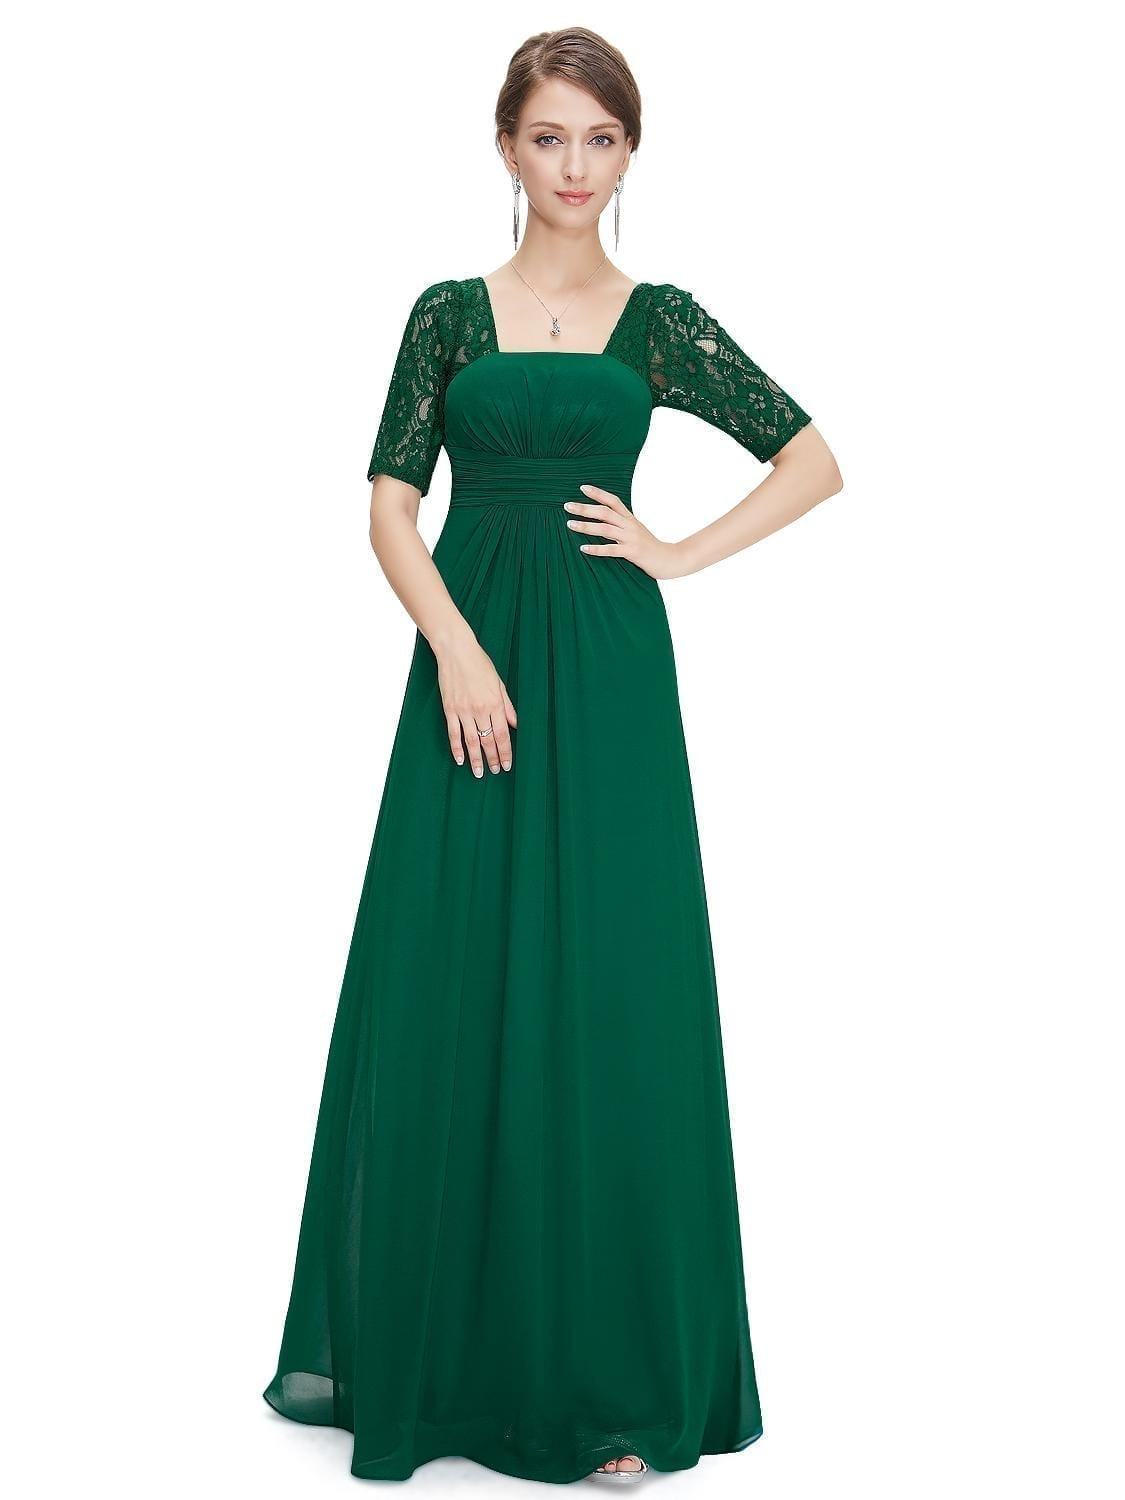 Sexy-fashion-green-lace-square-neckline-long-prom-evening-dress